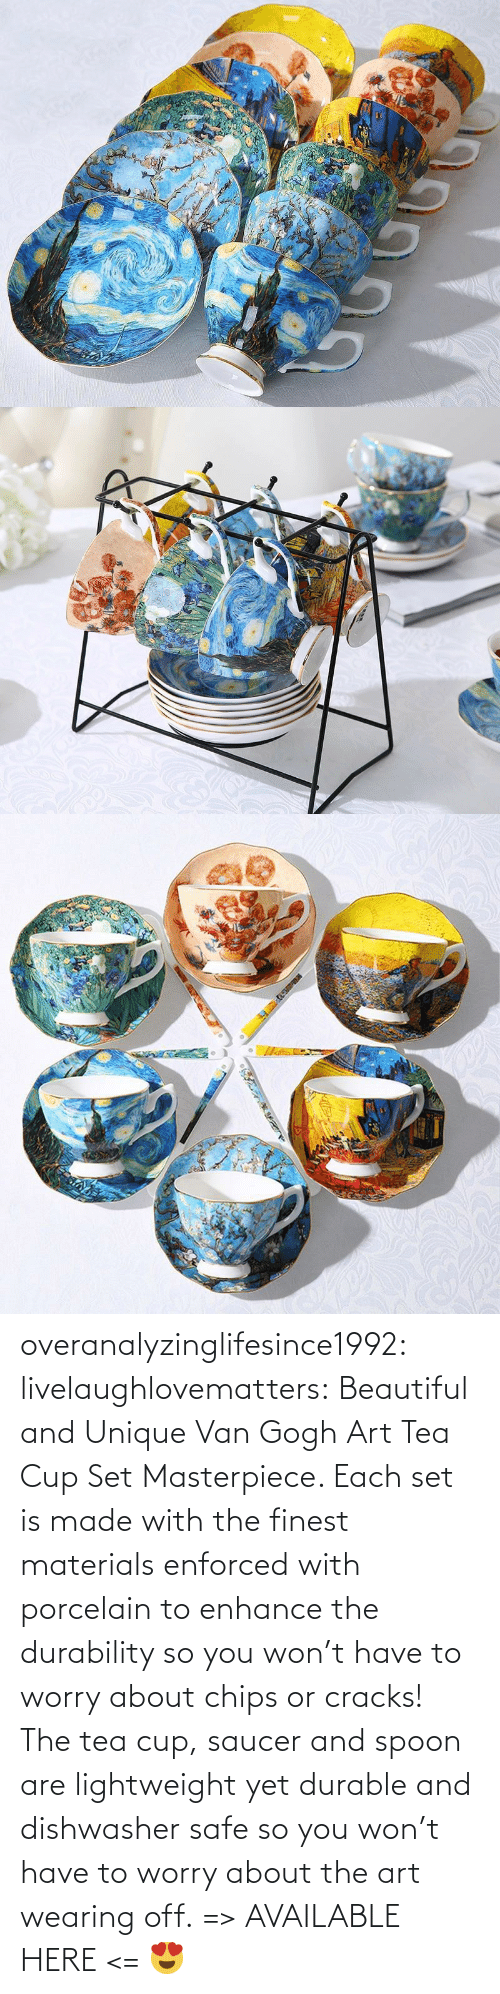 The Tea: overanalyzinglifesince1992: livelaughlovematters:  Beautiful and Unique Van Gogh Art Tea Cup Set Masterpiece. Each set is made with the finest materials enforced with porcelain to enhance the durability so you won't have to worry about chips or cracks! The tea cup, saucer and spoon are lightweight yet durable and dishwasher safe so you won't have to worry about the art wearing off. => AVAILABLE HERE <=    😍